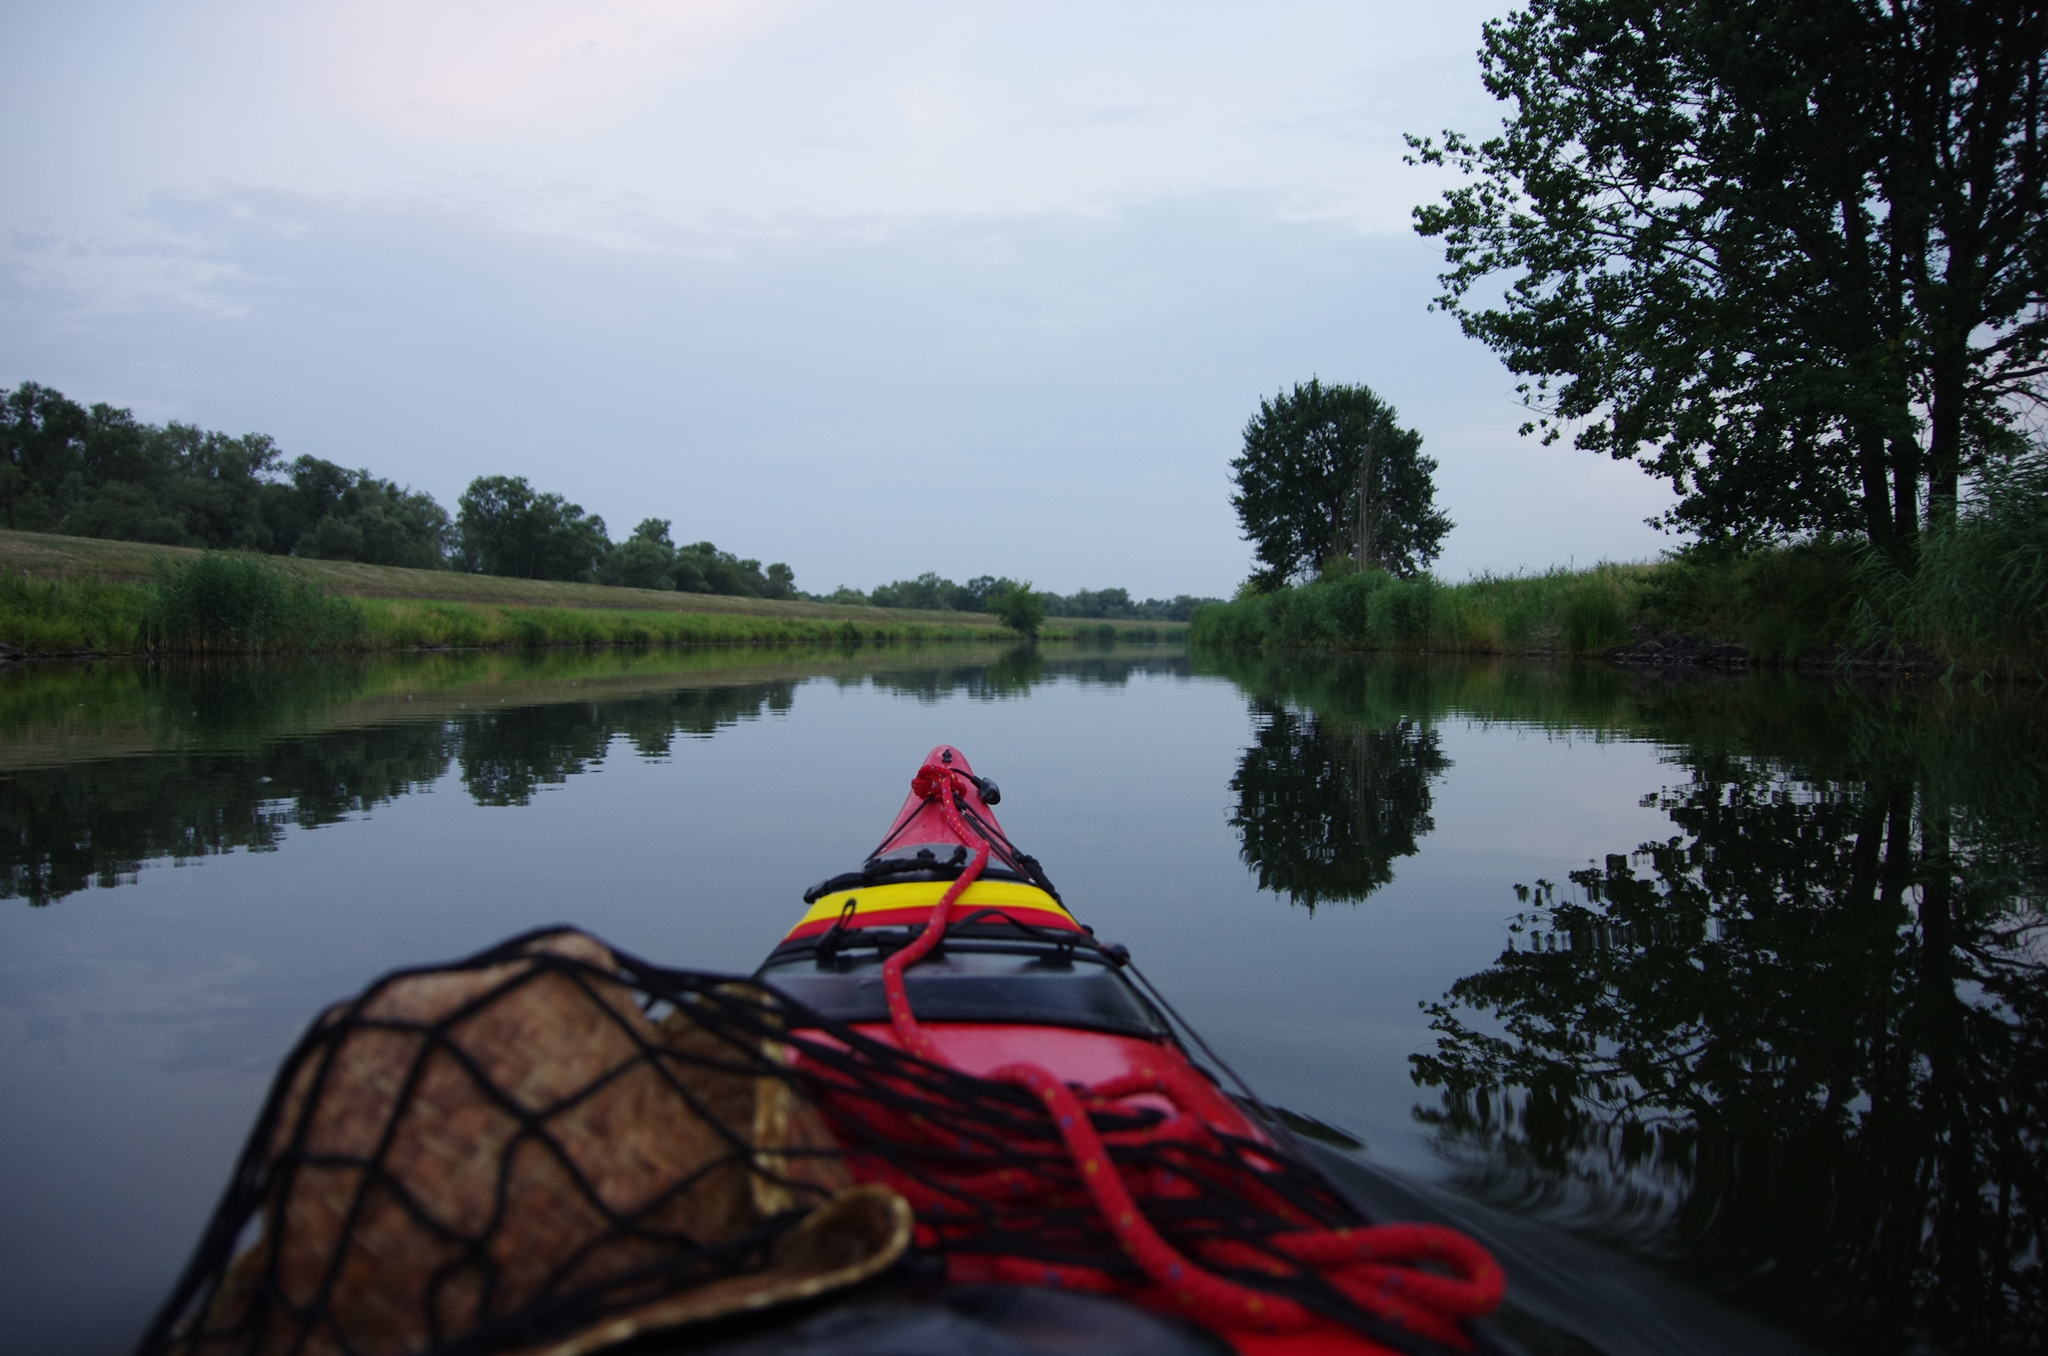 kayaking-odra-east-and-west_20-13-50_25-07-2016